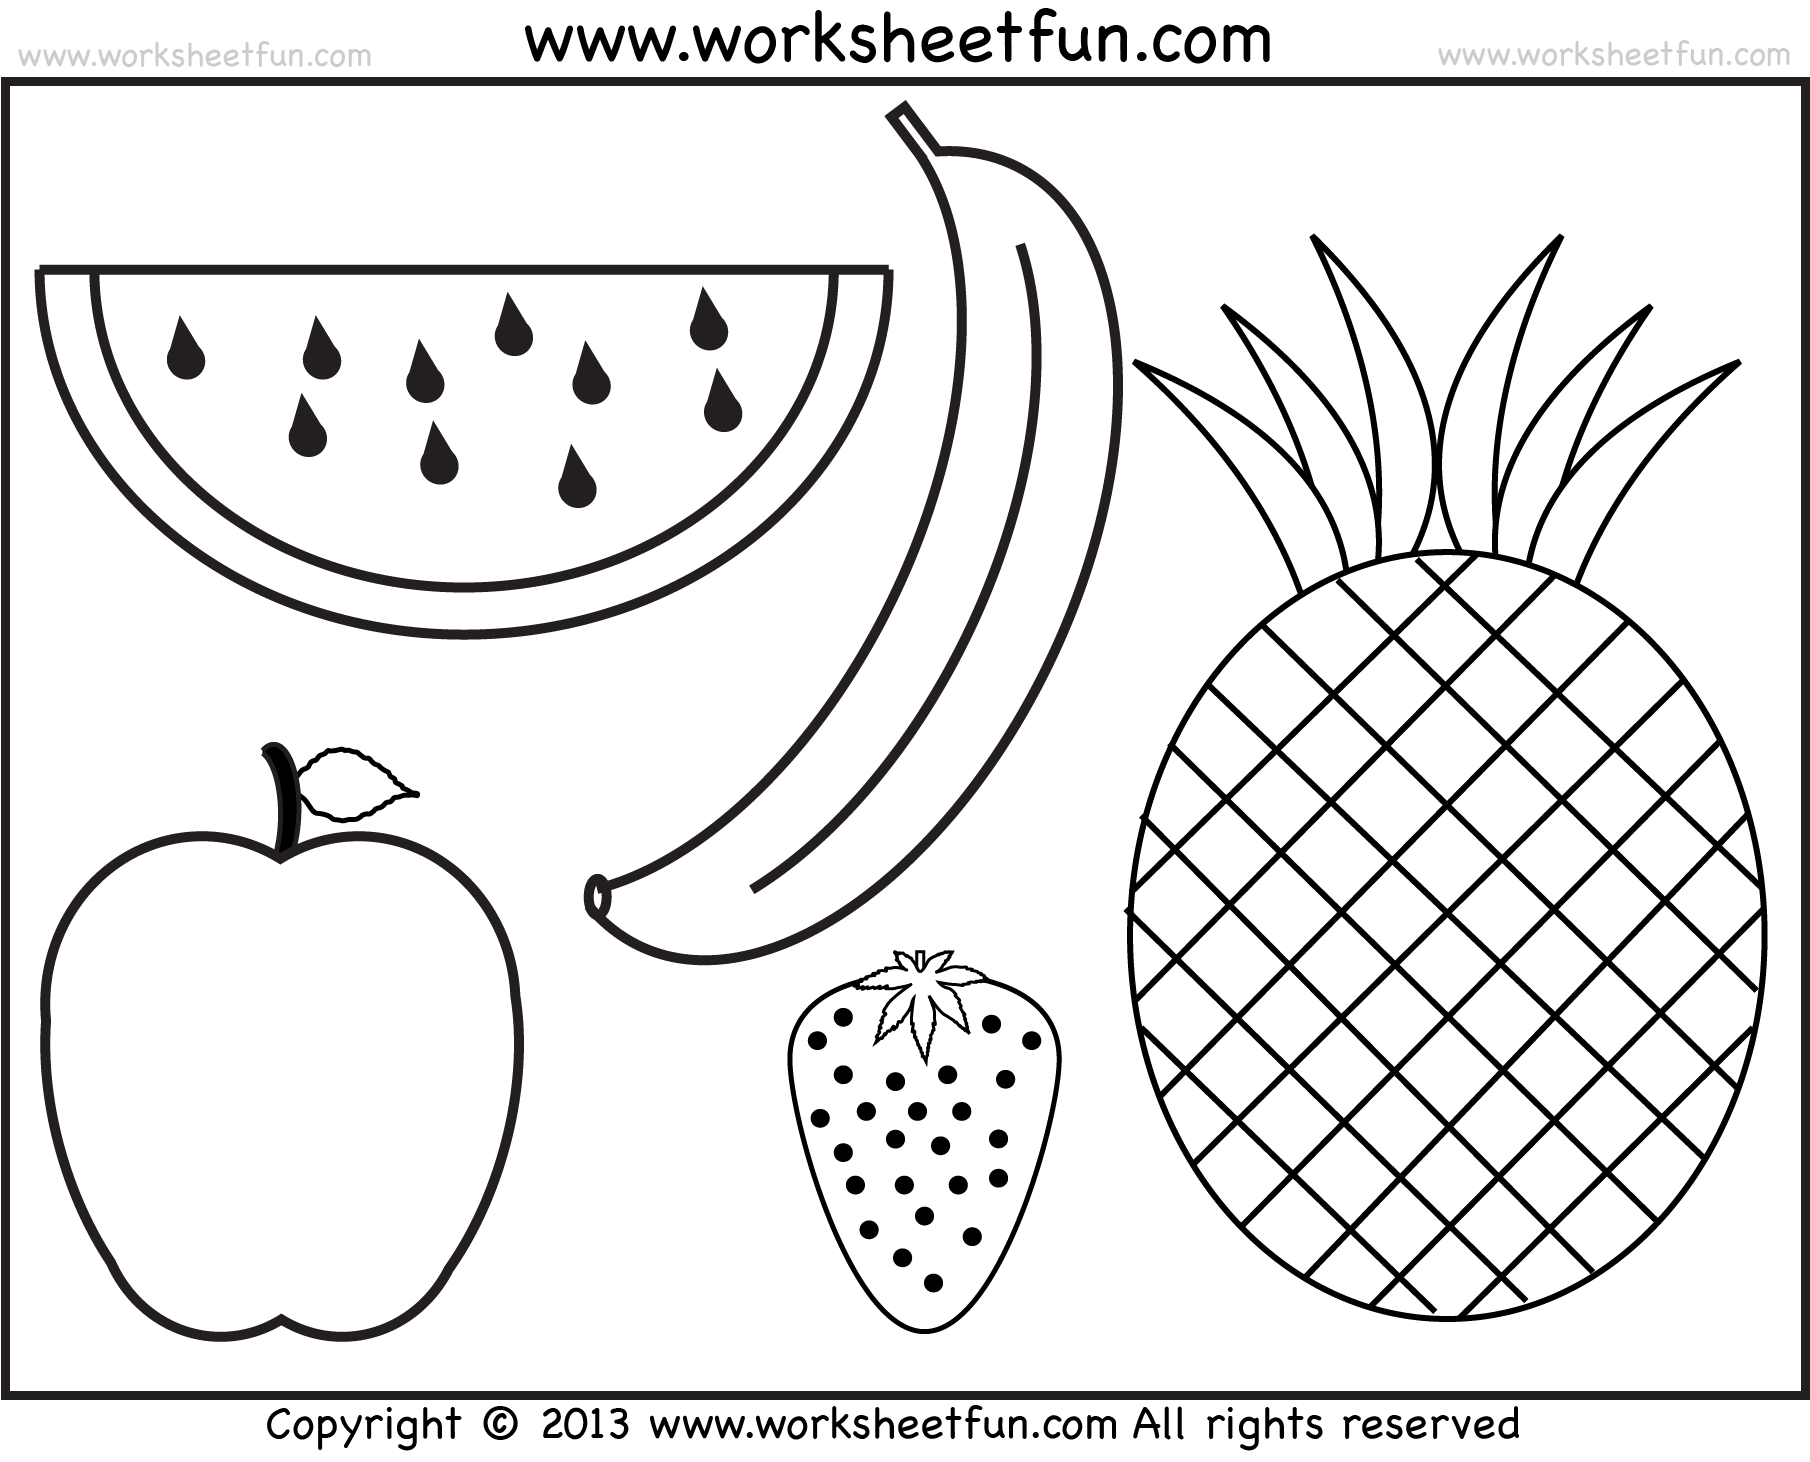 Free Printable Halloween Worksheets For Preschool